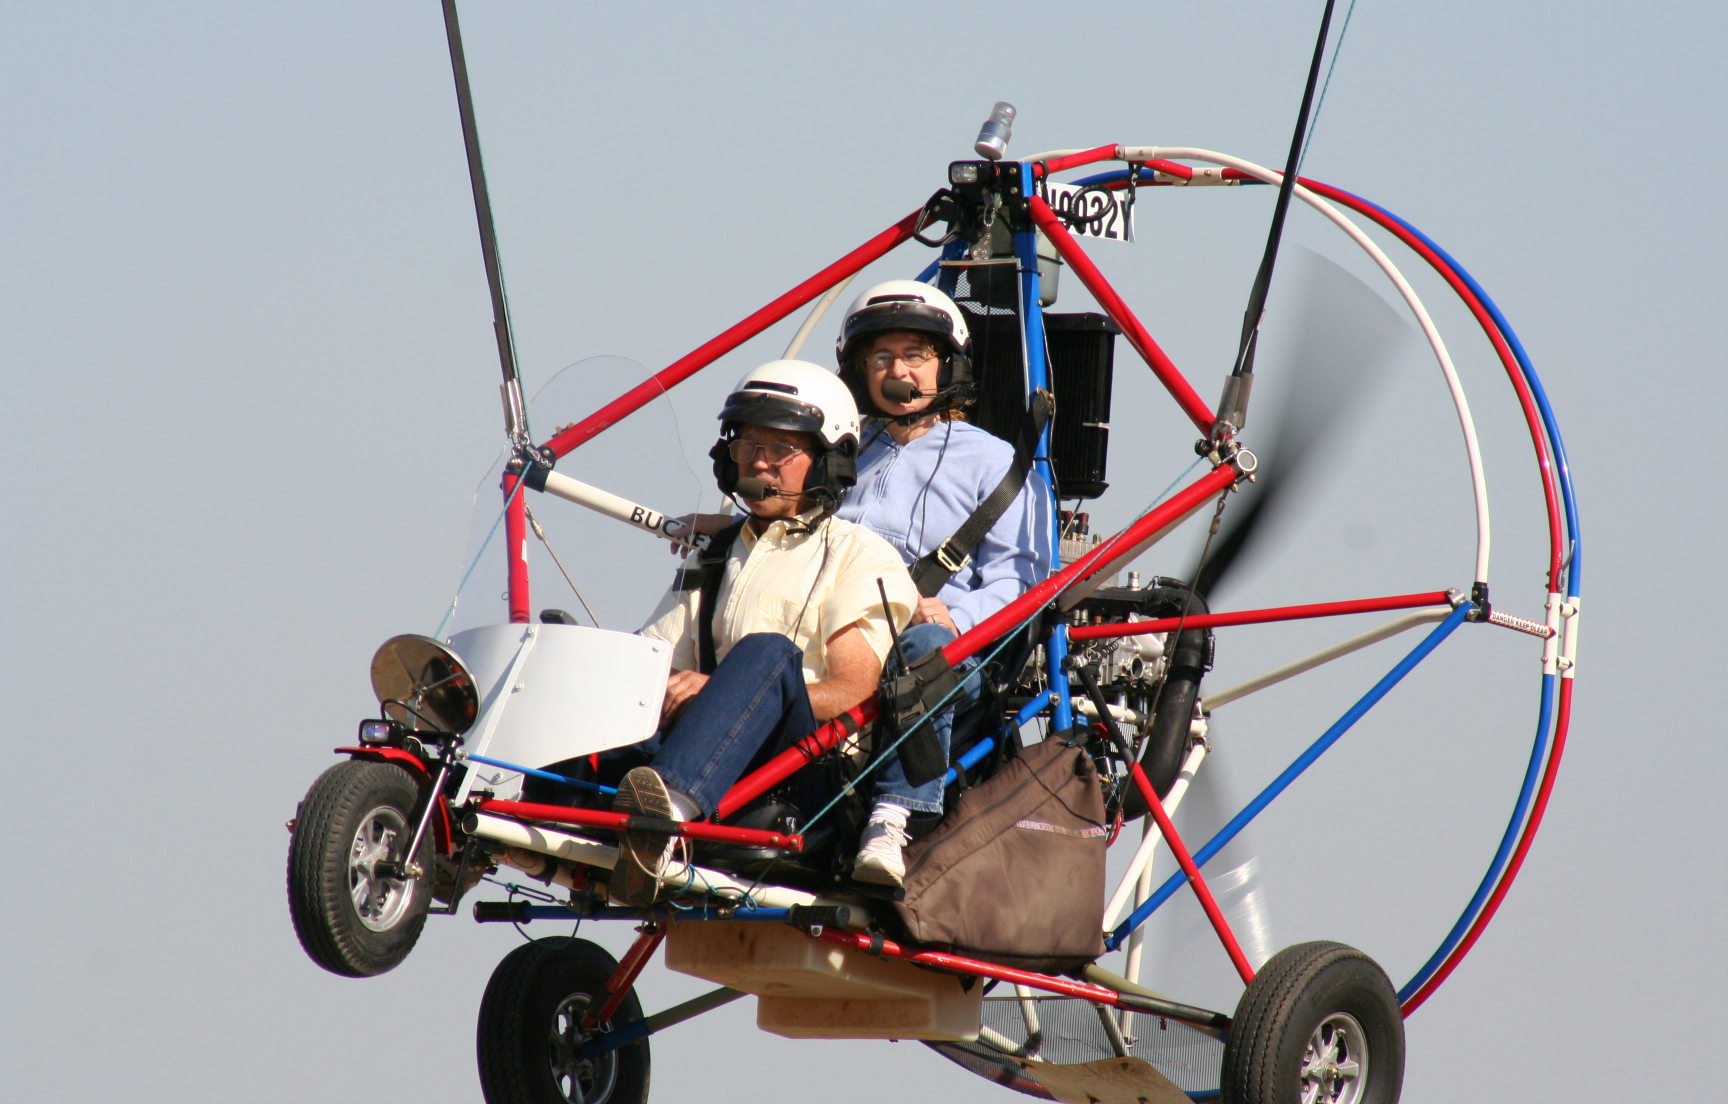 Louisville, KY  Feb 22-23, 2020 – –  Repairman Inspection Powered Parachute